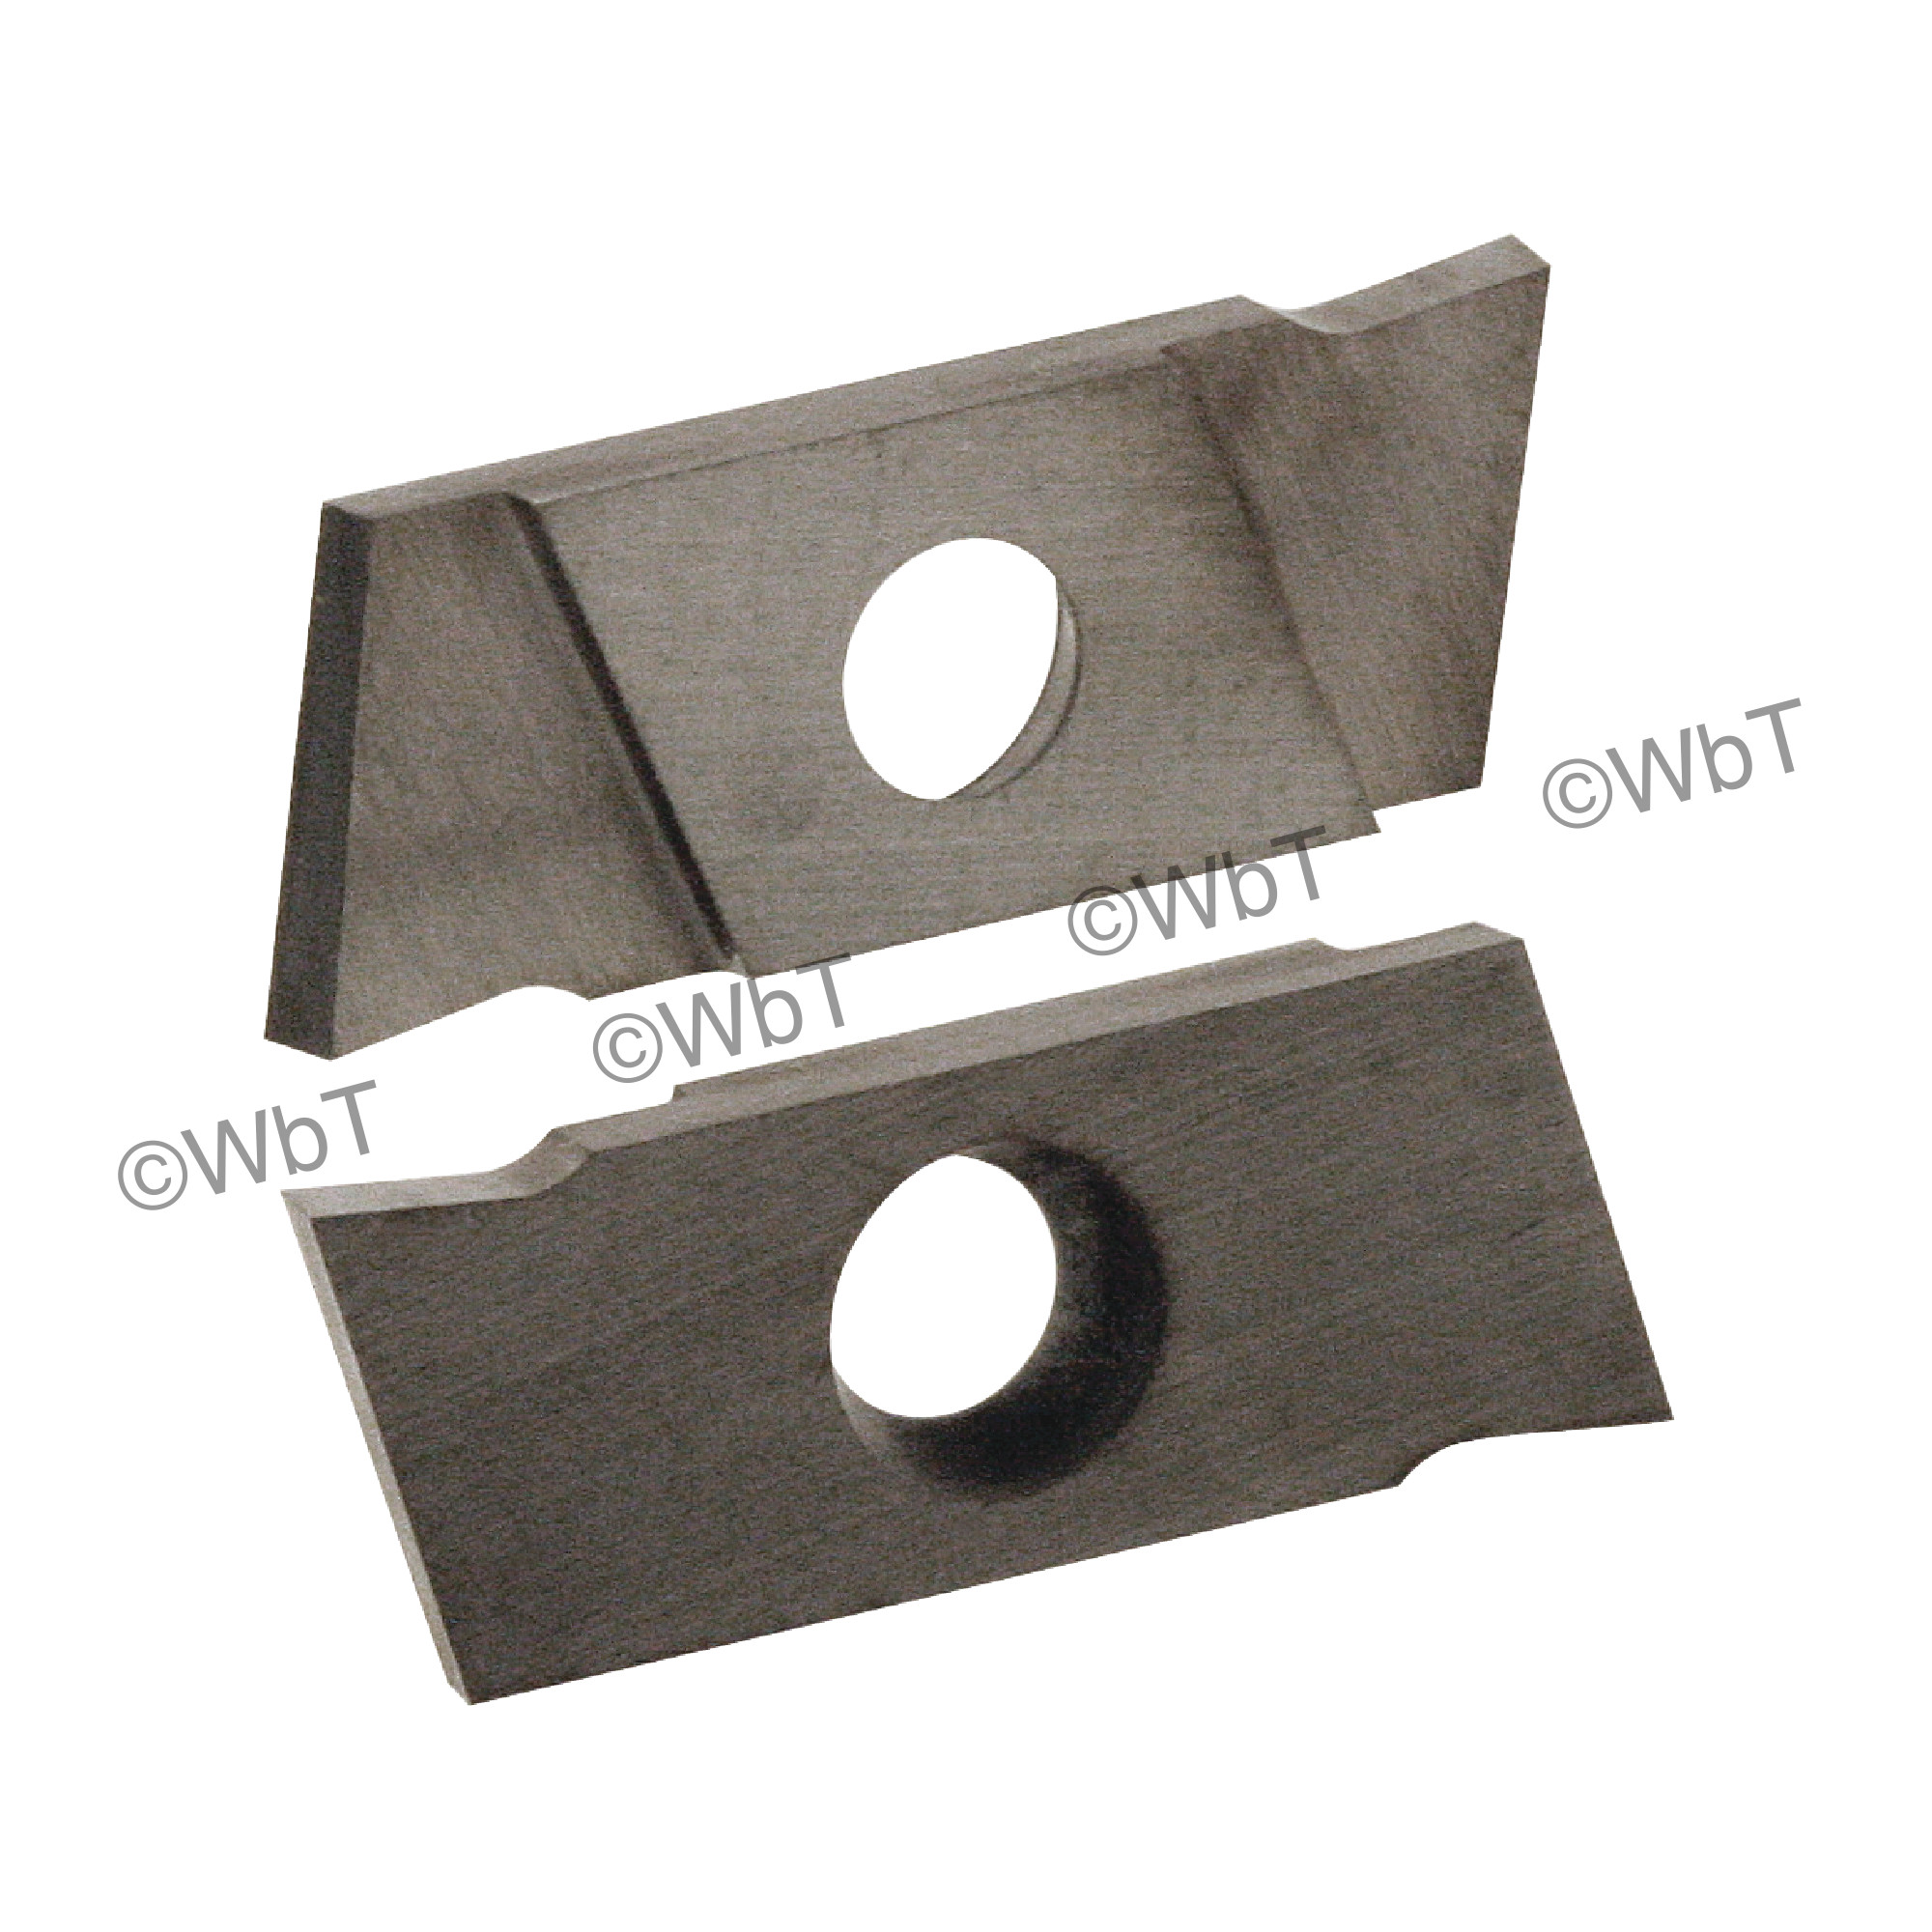 """NIKCOLE - GIE-7-GP-1.5LN C2 / Indexable Carbide Insert for Grooving / 0.059"""" Cutting Width / Left Hand"""